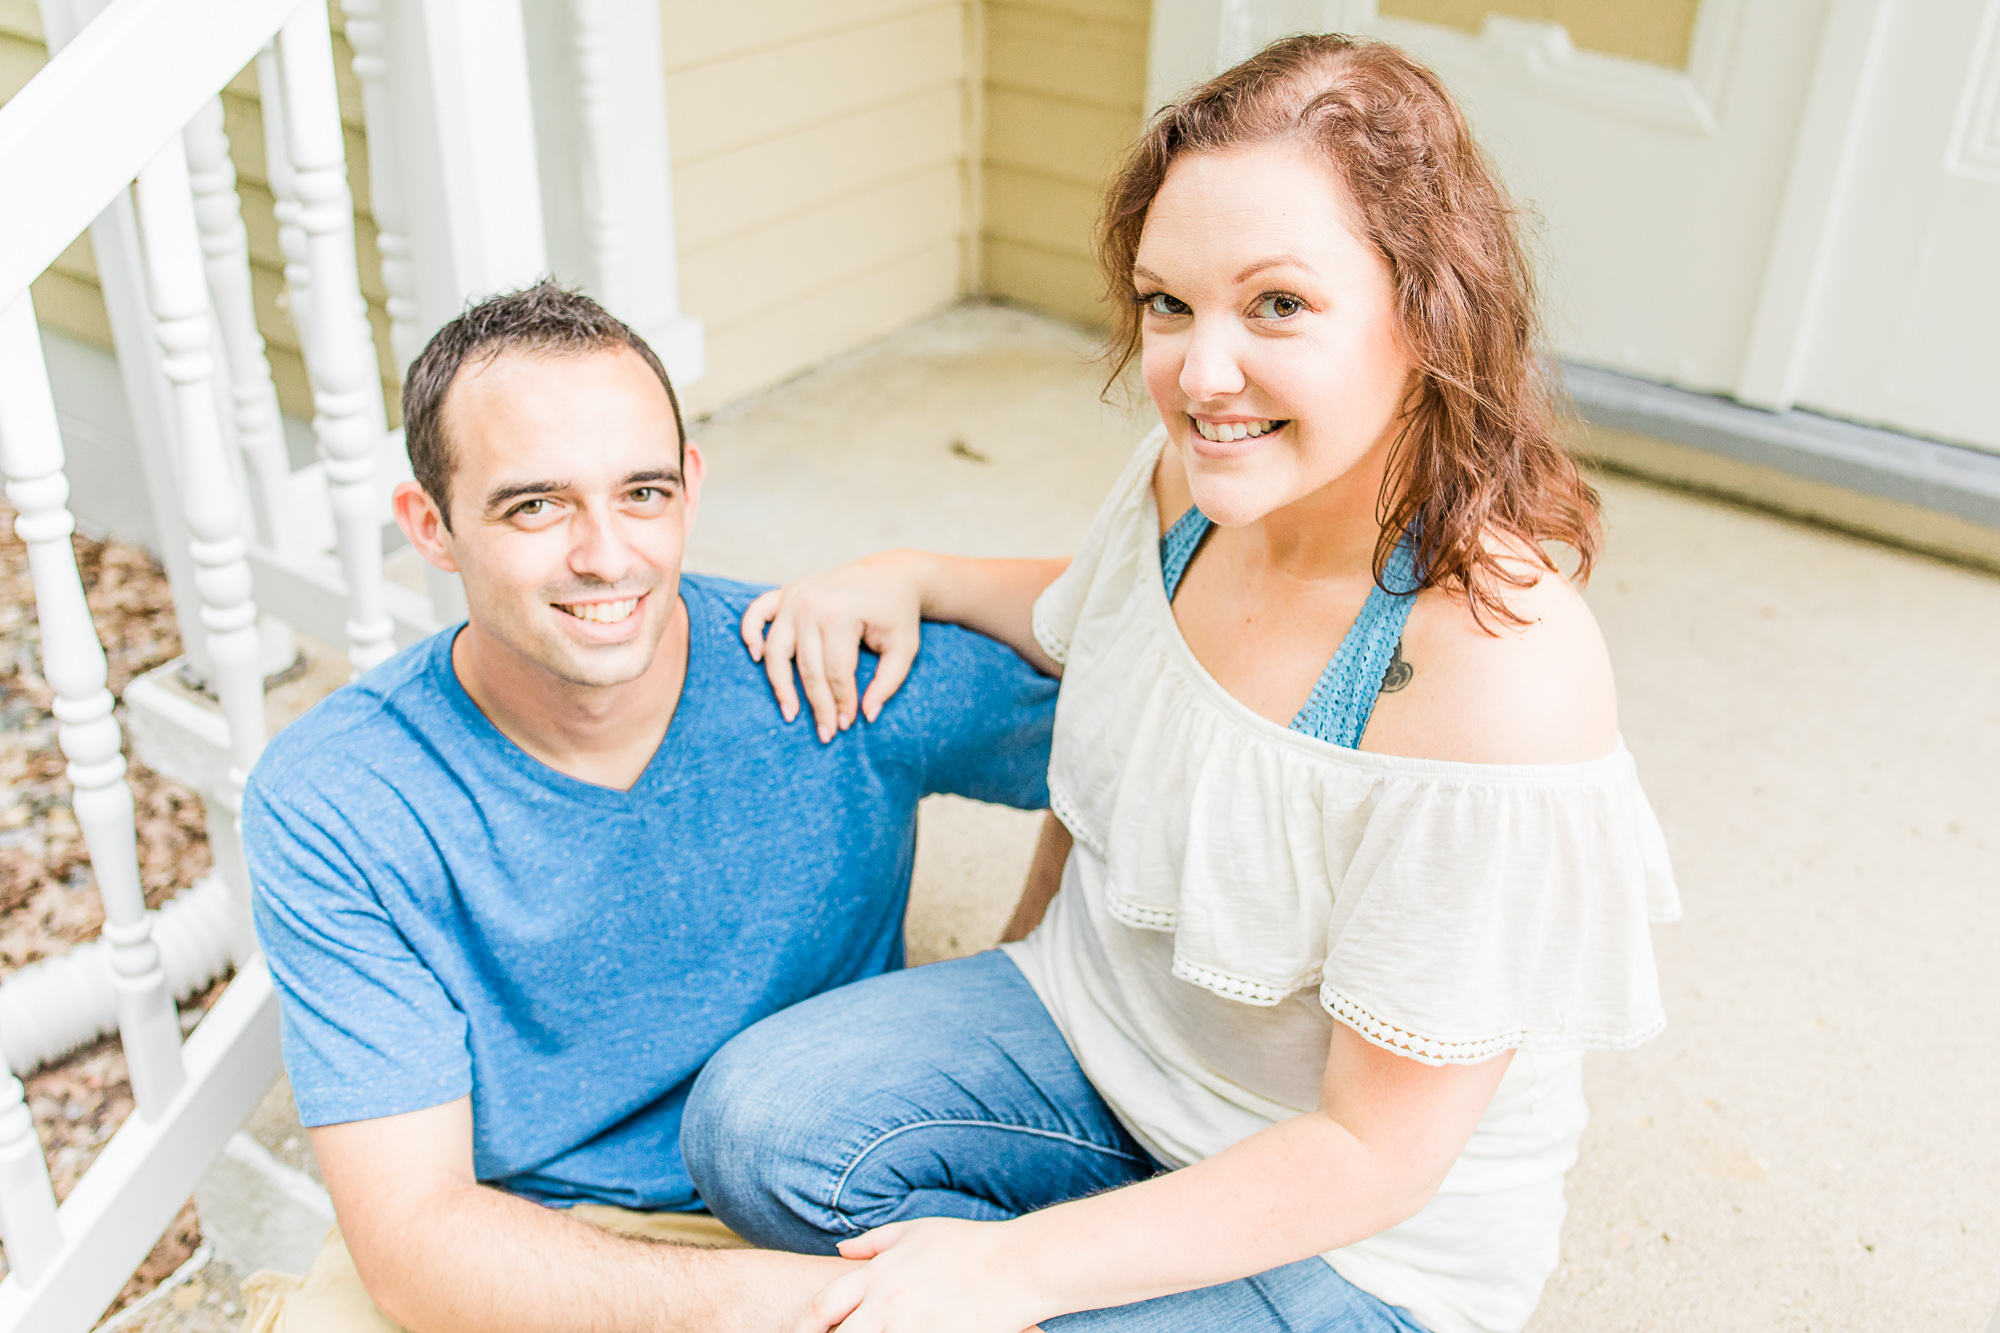 lafayette indiana engagement photos ross camp-28.jpg